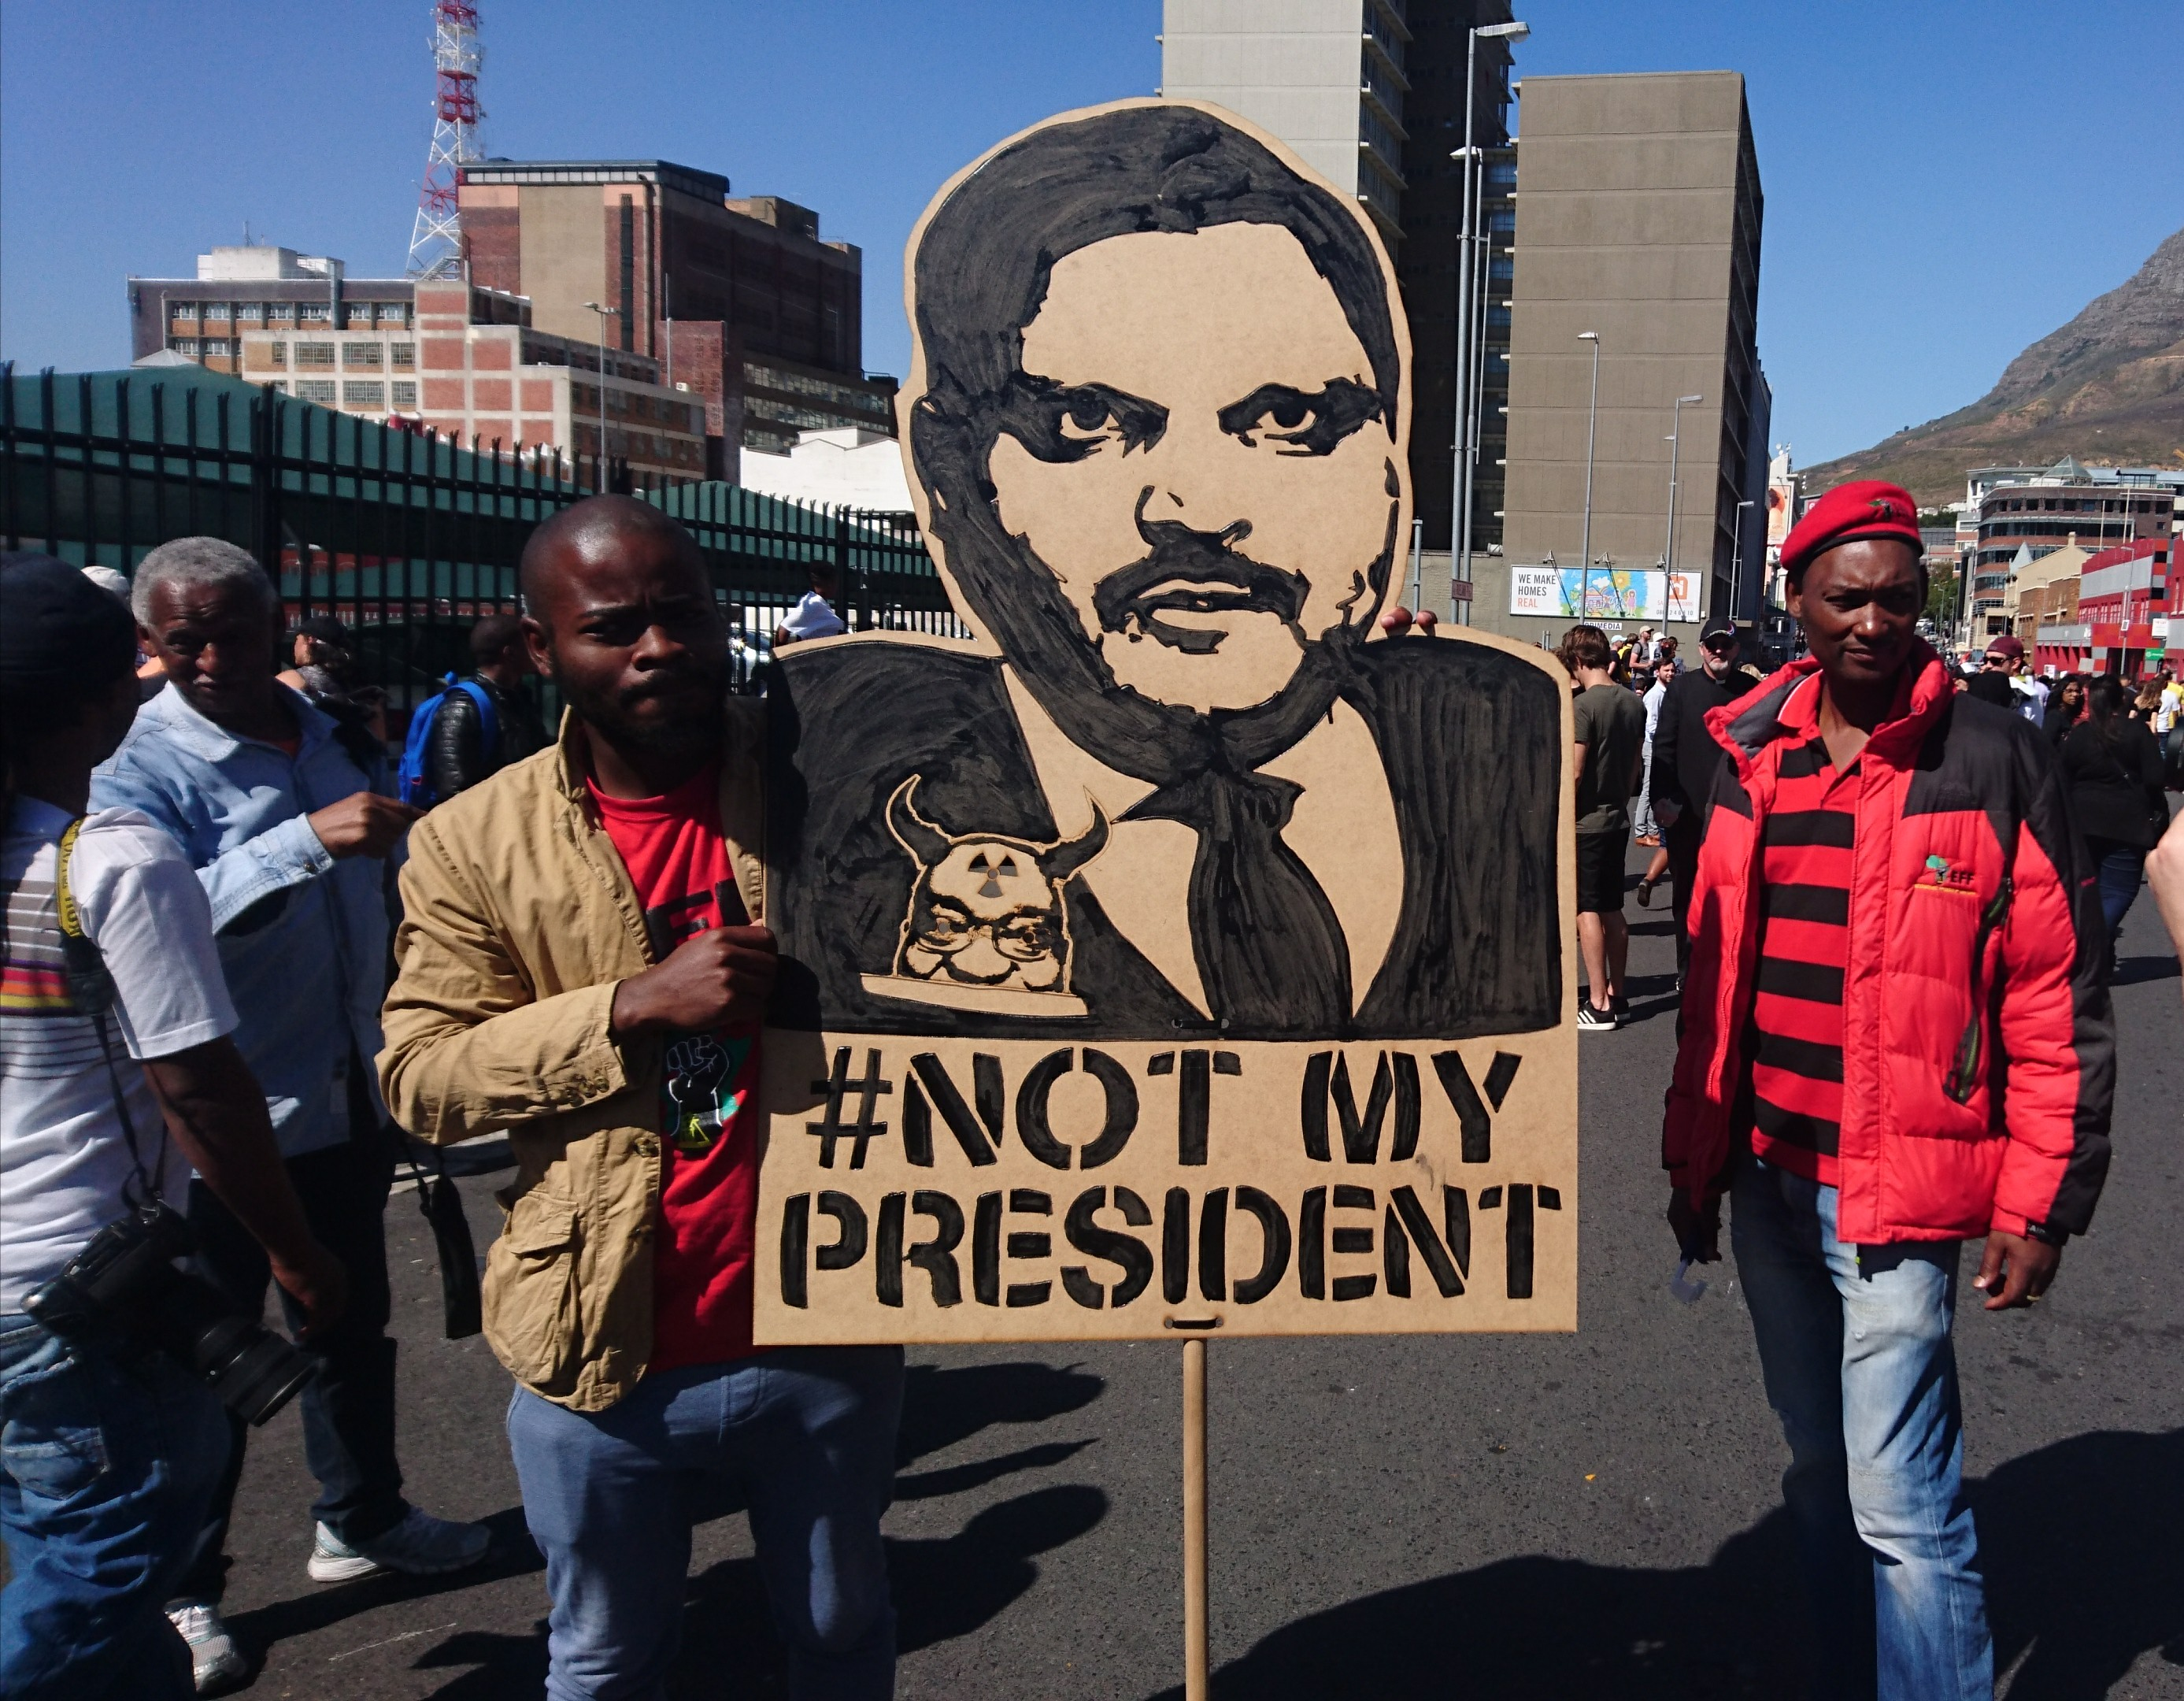 atul_gupta_protest_banner_-_cape_town_zuma_must_fall